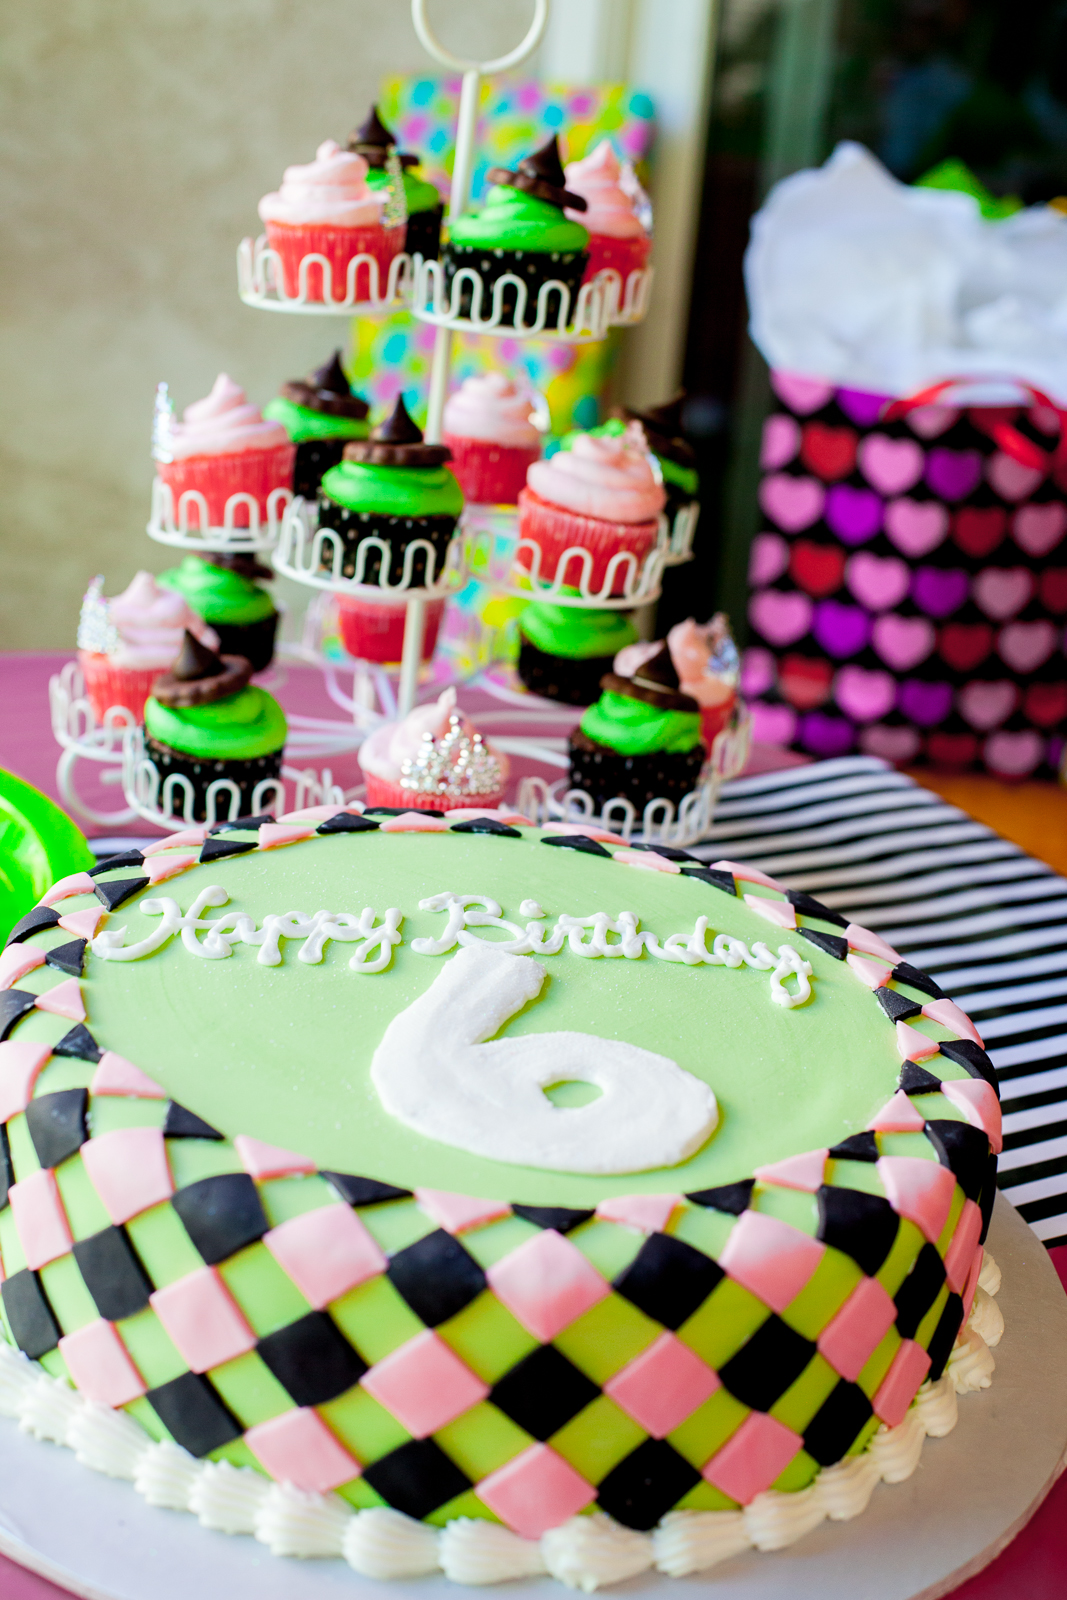 Green and Pink Cake